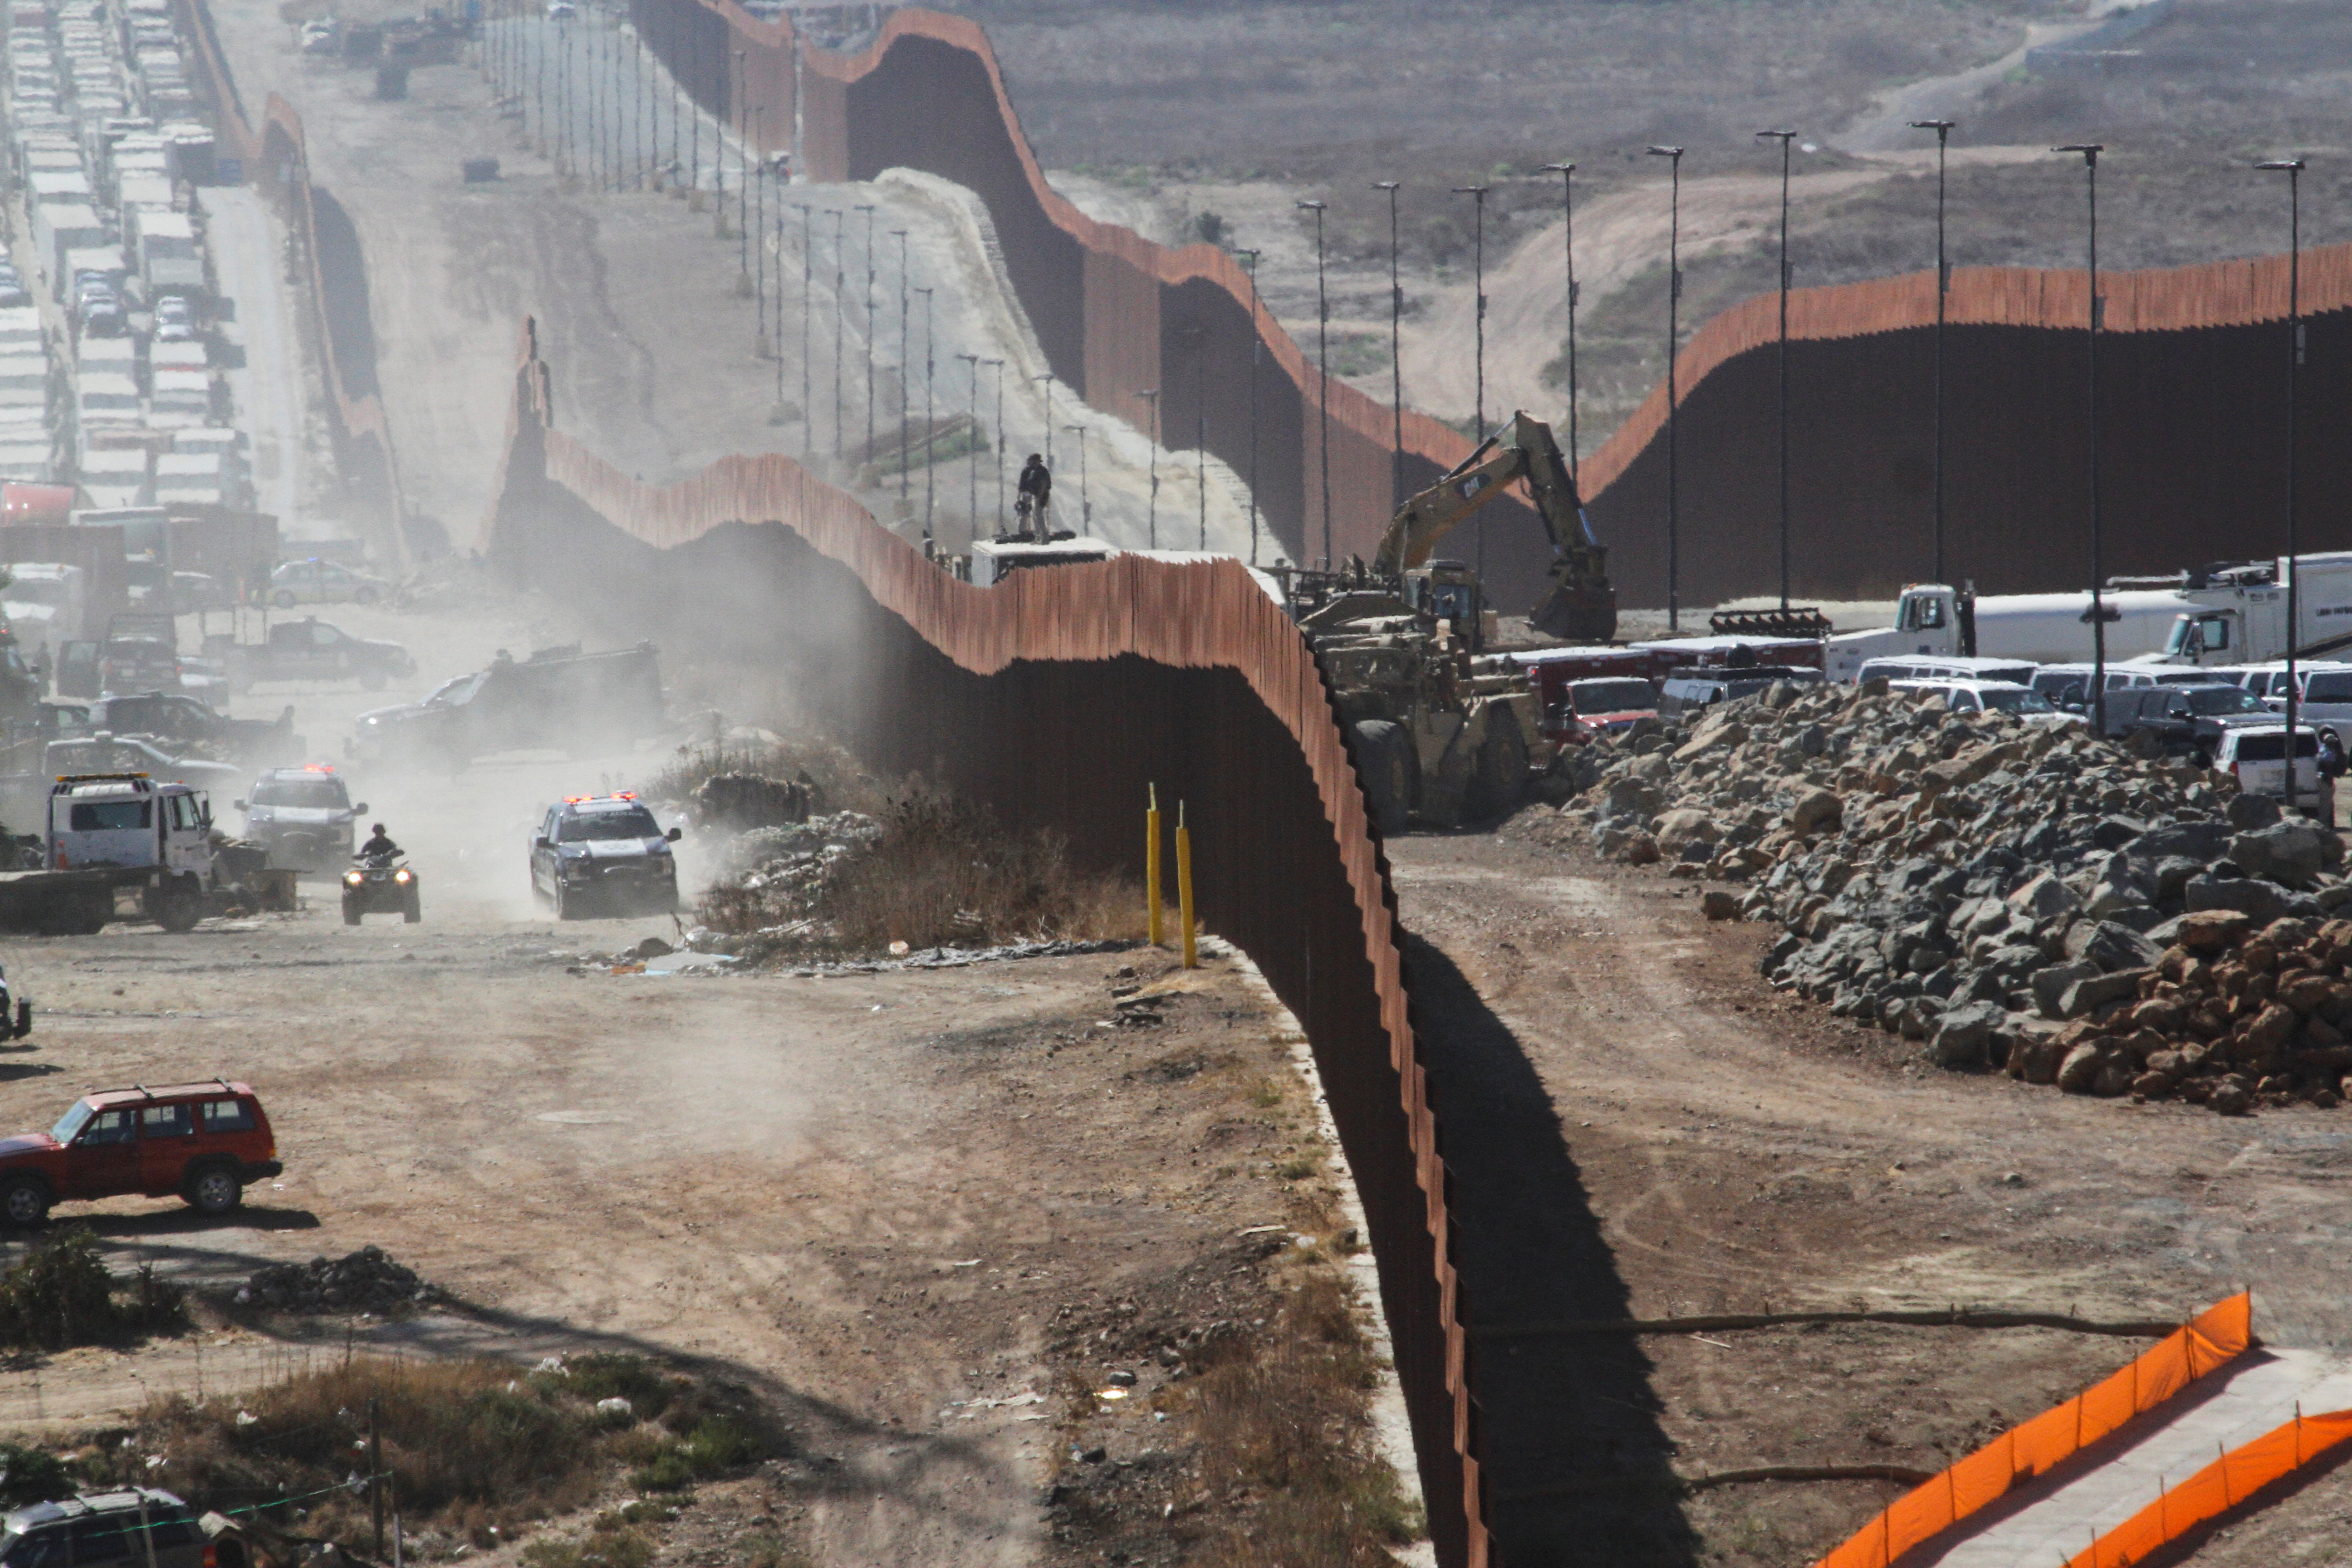 A general view shows Mexican security forces keeping watch at the border fence between Mexico and the United States, ahead of the visit of U.S. President Donald Trump to a section of the border wall in Otay Mesa, California, as pictured from Tijuana